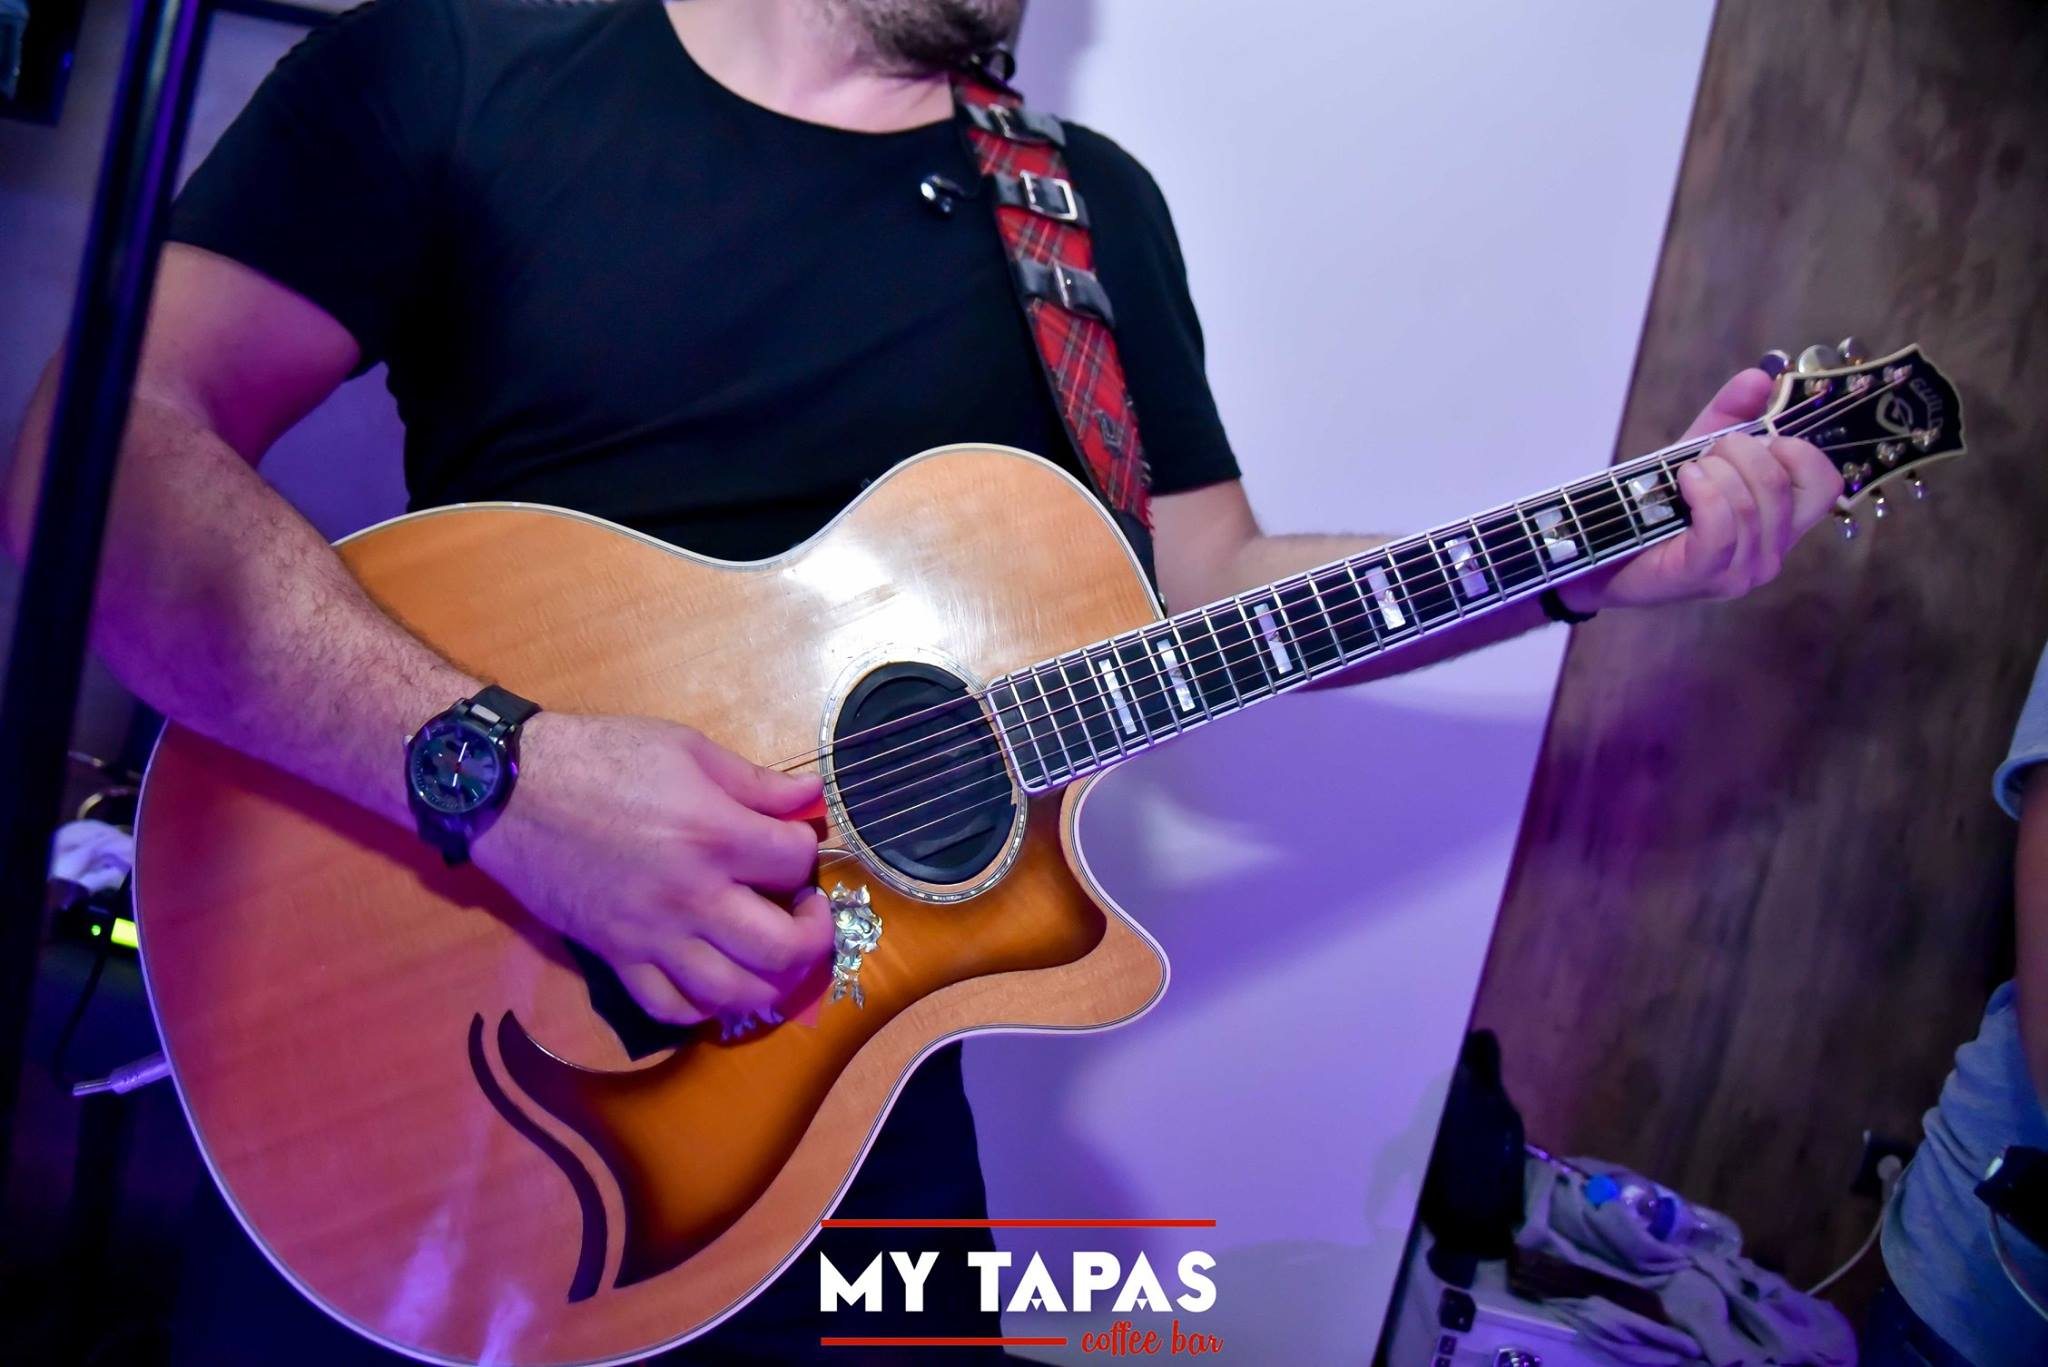 43. 22519811 1576370679049806 3786293221774052216 o 1 - My Live Tuesdays στο MY Tapas Coffee bar | Τρίτη 17.10 Part 1/2